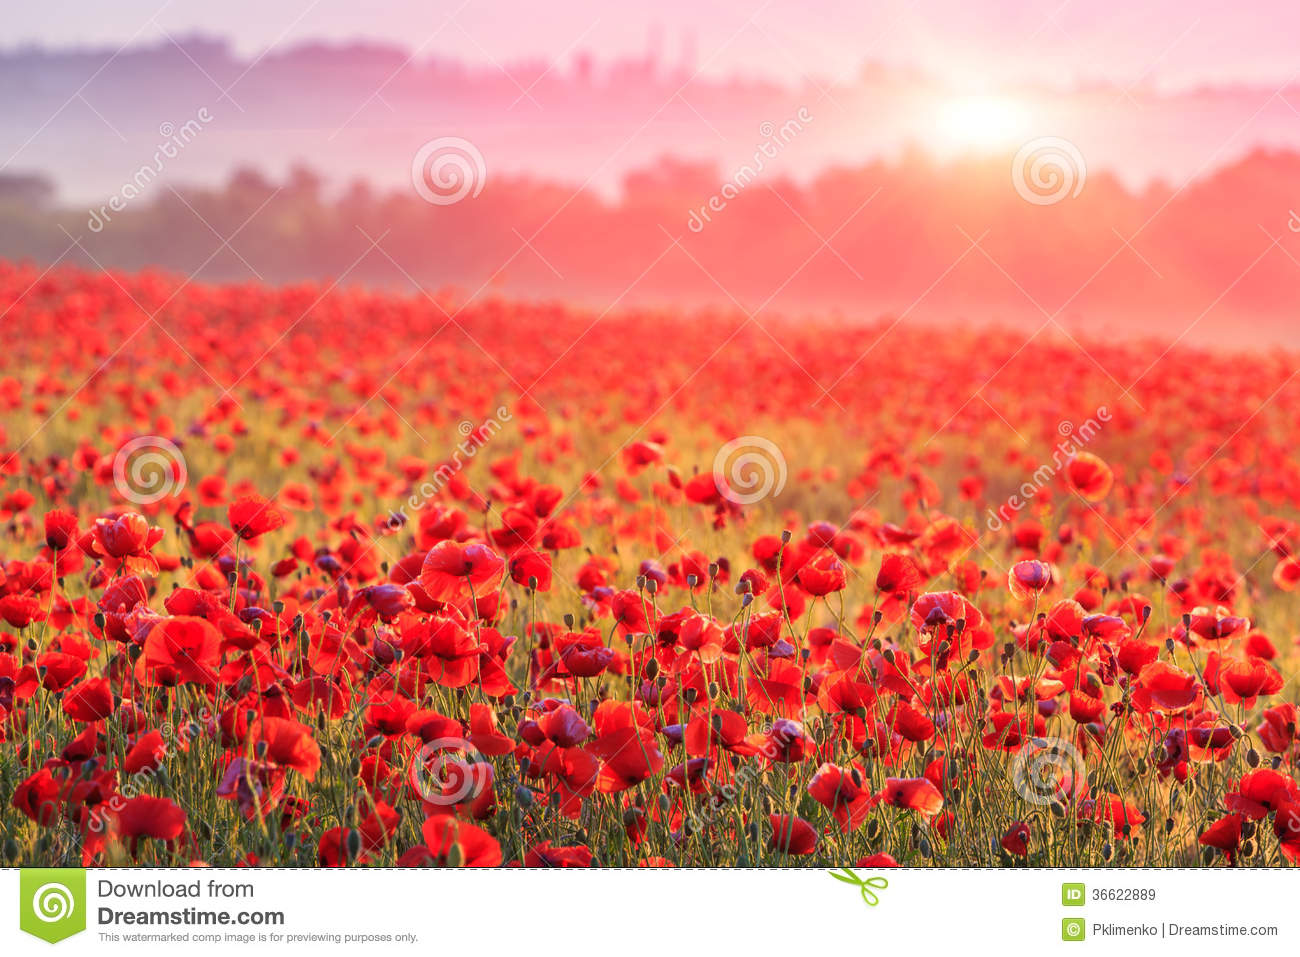 Spring 3d Live Wallpaper Red Poppy Field Royalty Free Stock Images Image 36622889